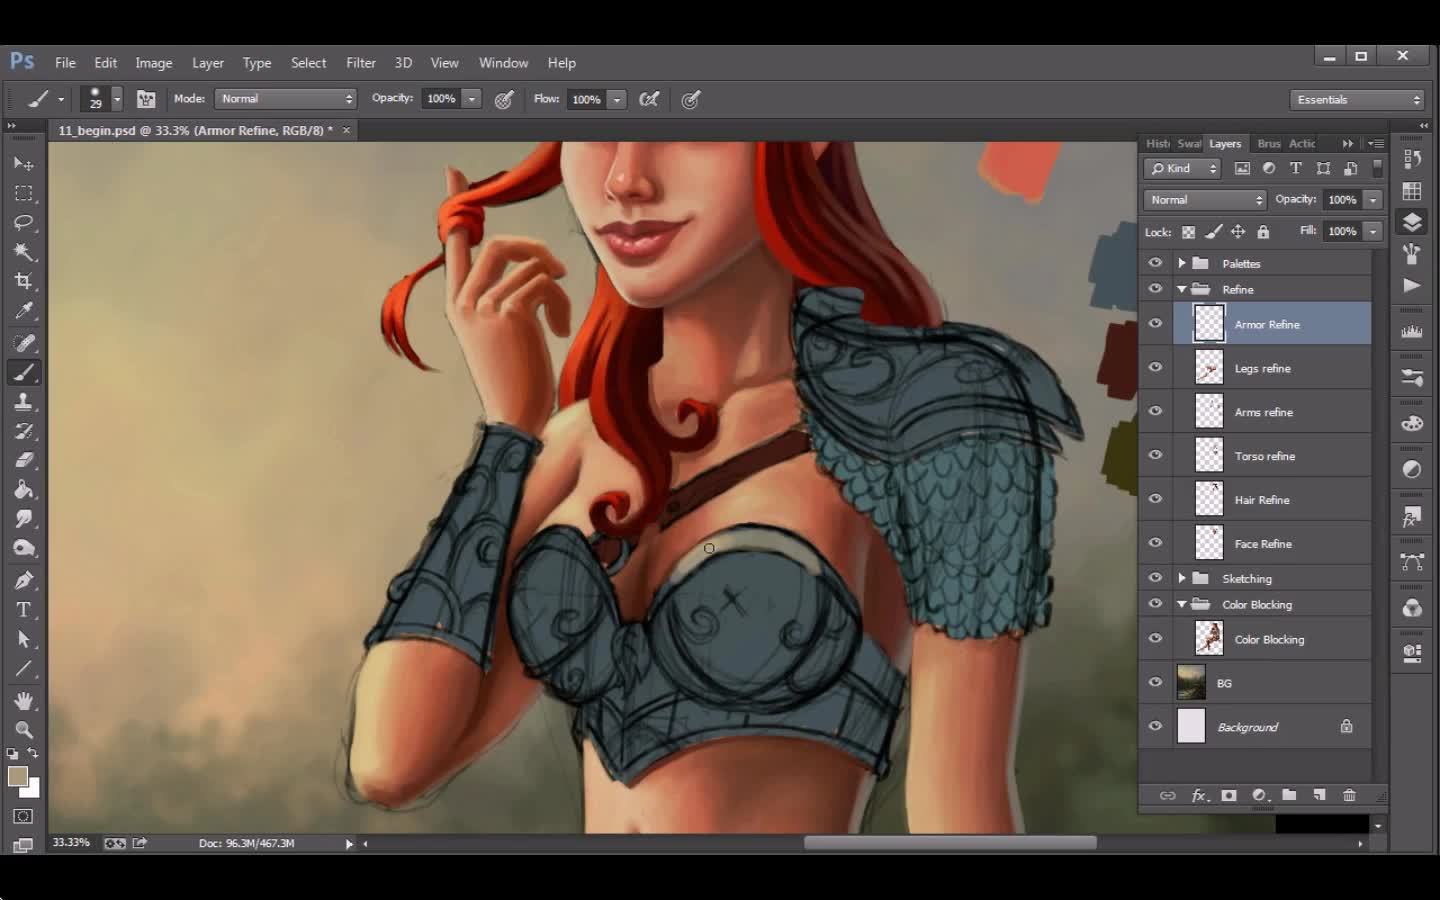 Kurt Jones - Illustrating a Fantasy Pinup in Photoshop